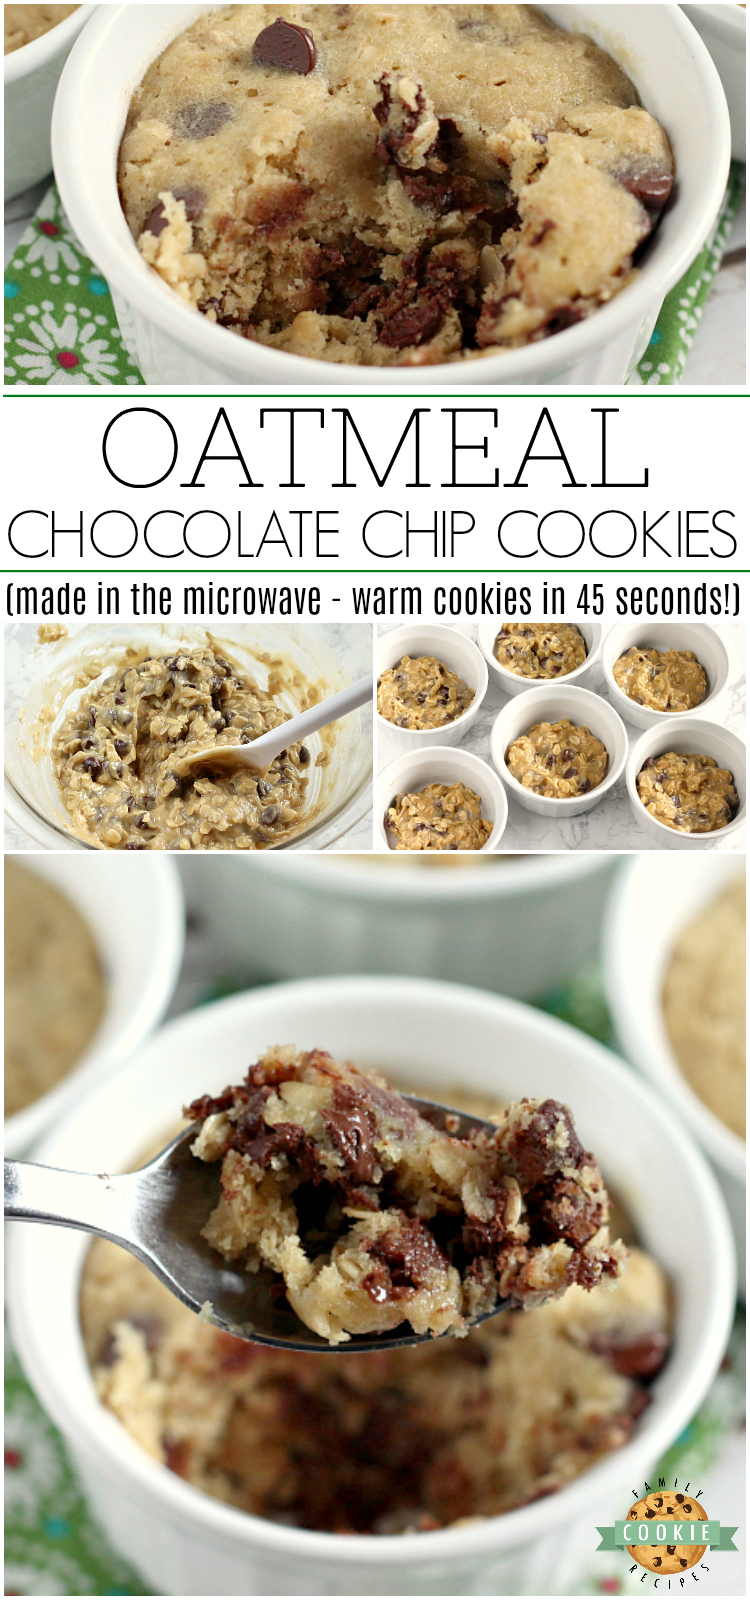 Oatmeal Chocolate Chip Cookies that are ready in less than 5 minutes! This basic oatmeal chocolate chip cookie recipe makes six soft and chewy mug cookies in the microwave - no oven required! via @buttergirls